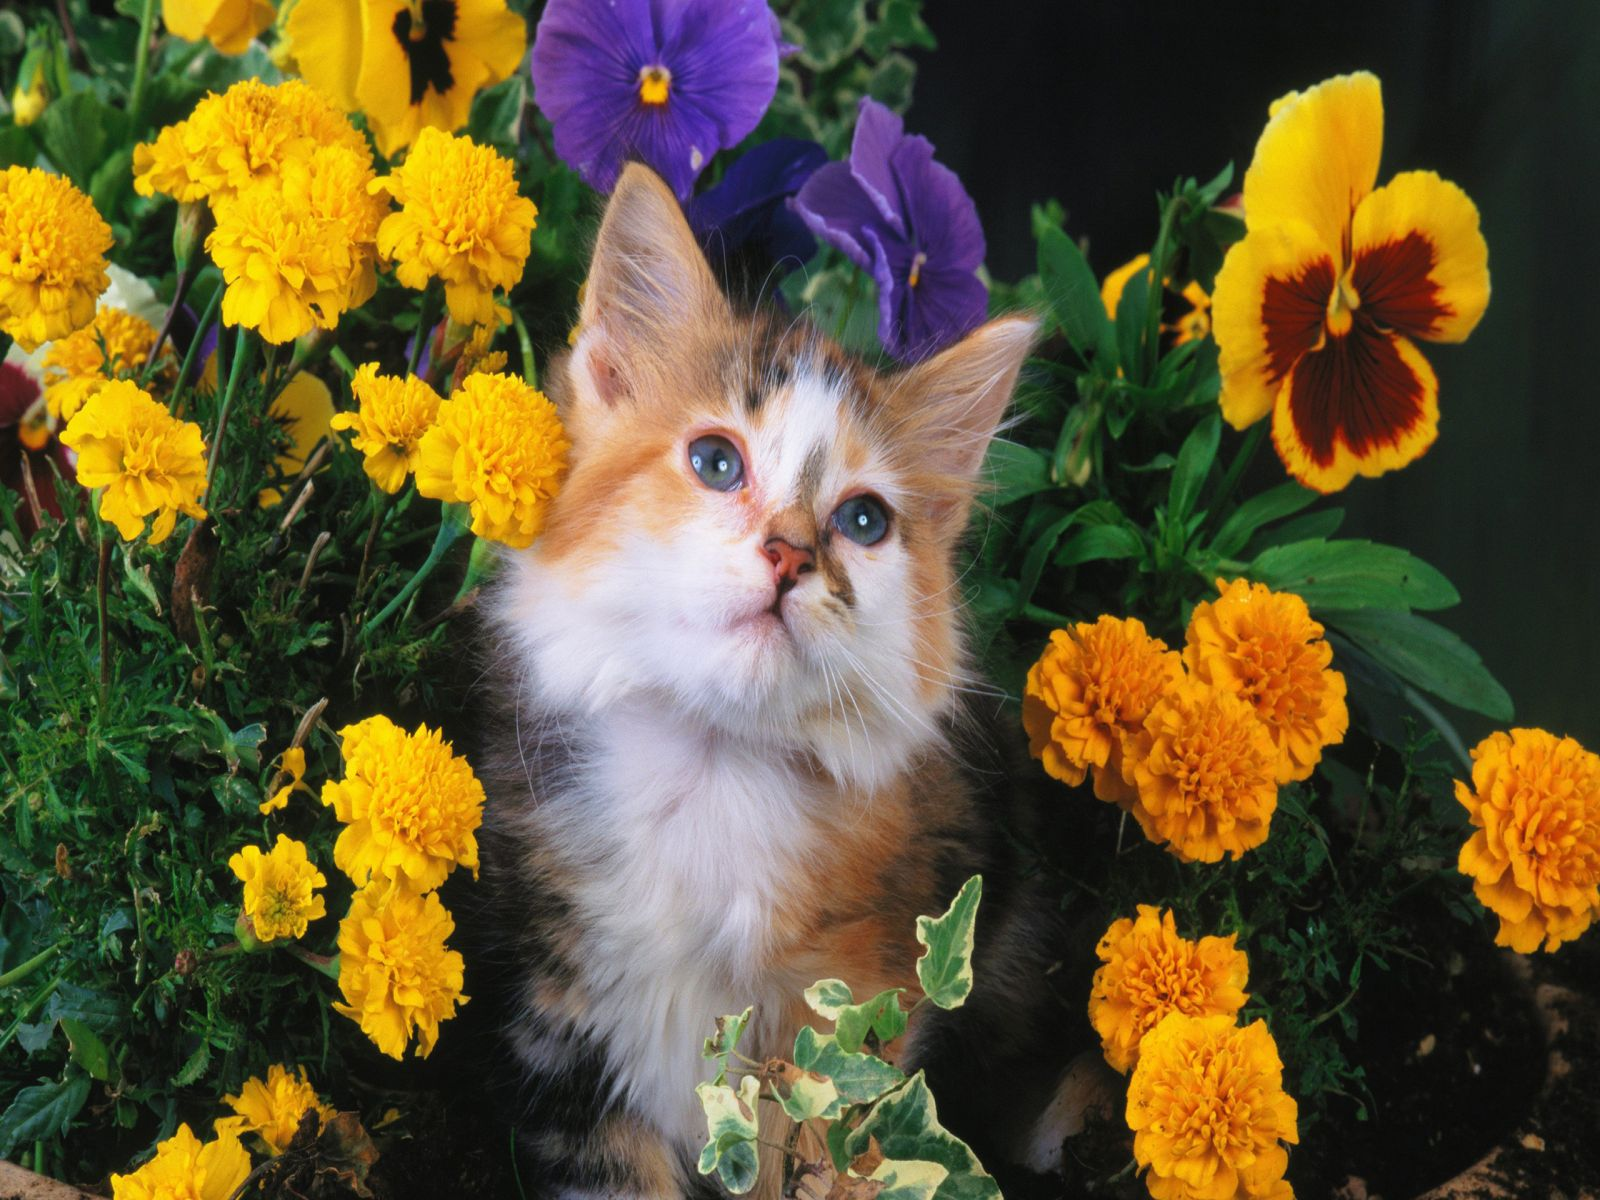 Wallpaper So Freakin Cute Cats Cat With Flowers Wallpaper Cats Wallpaper 36915309